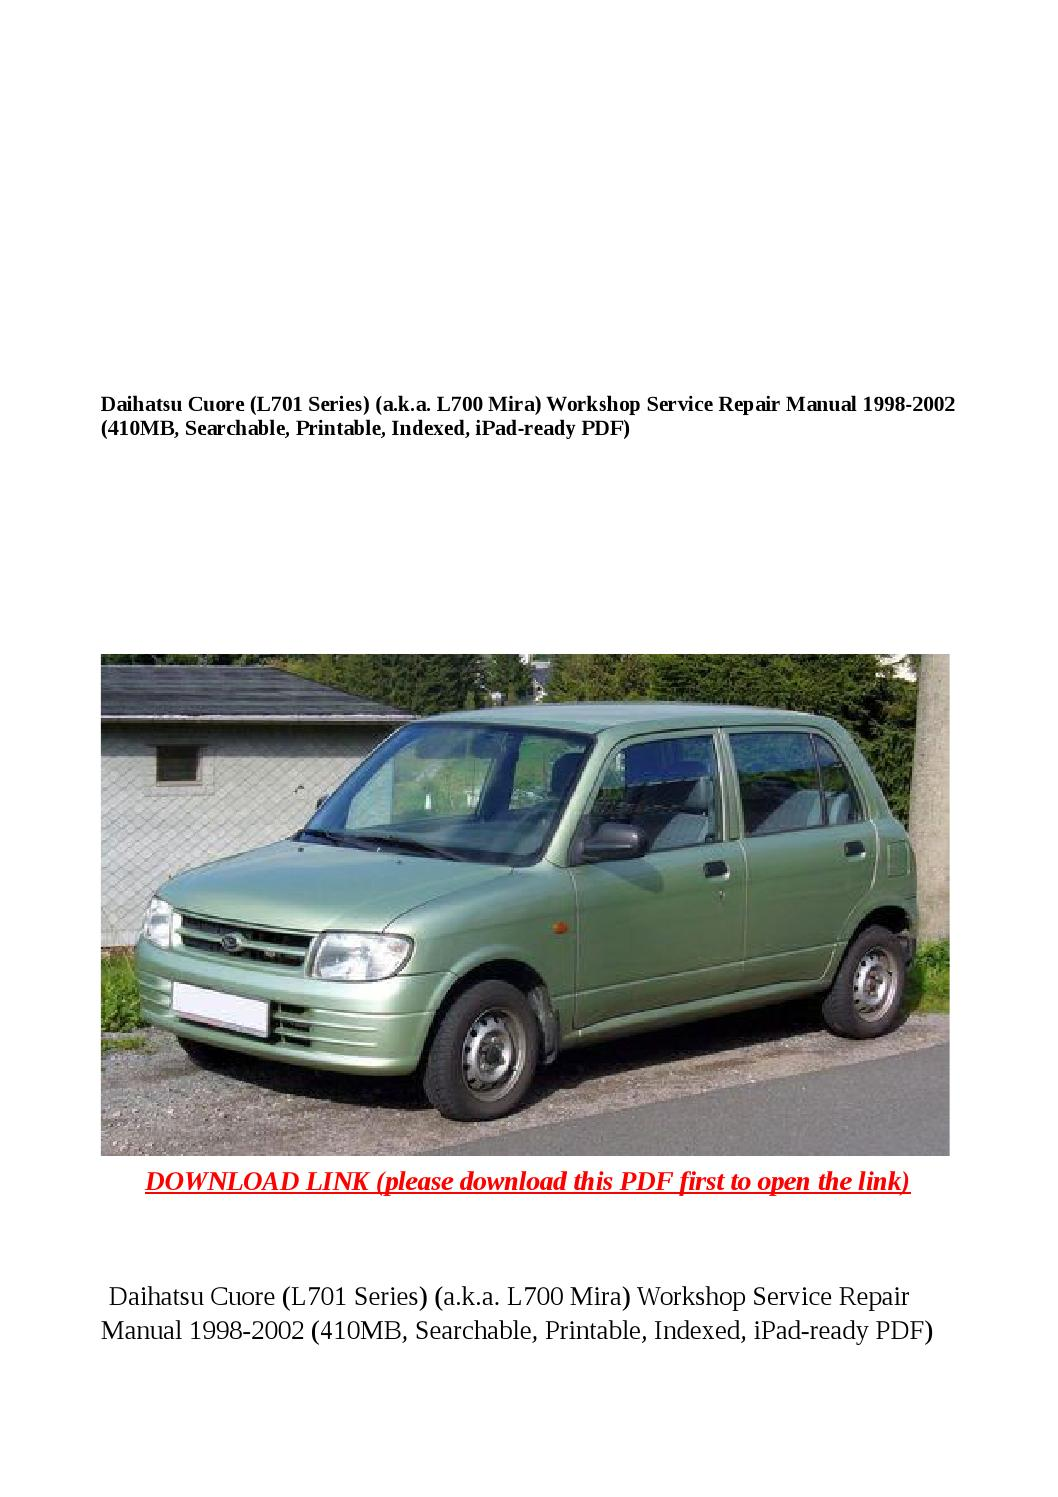 Daihatsu cuore (l701 series) (a k a l700 mira) workshop service repair  manual 1998 2002 (410mb, sear by dale - issuu